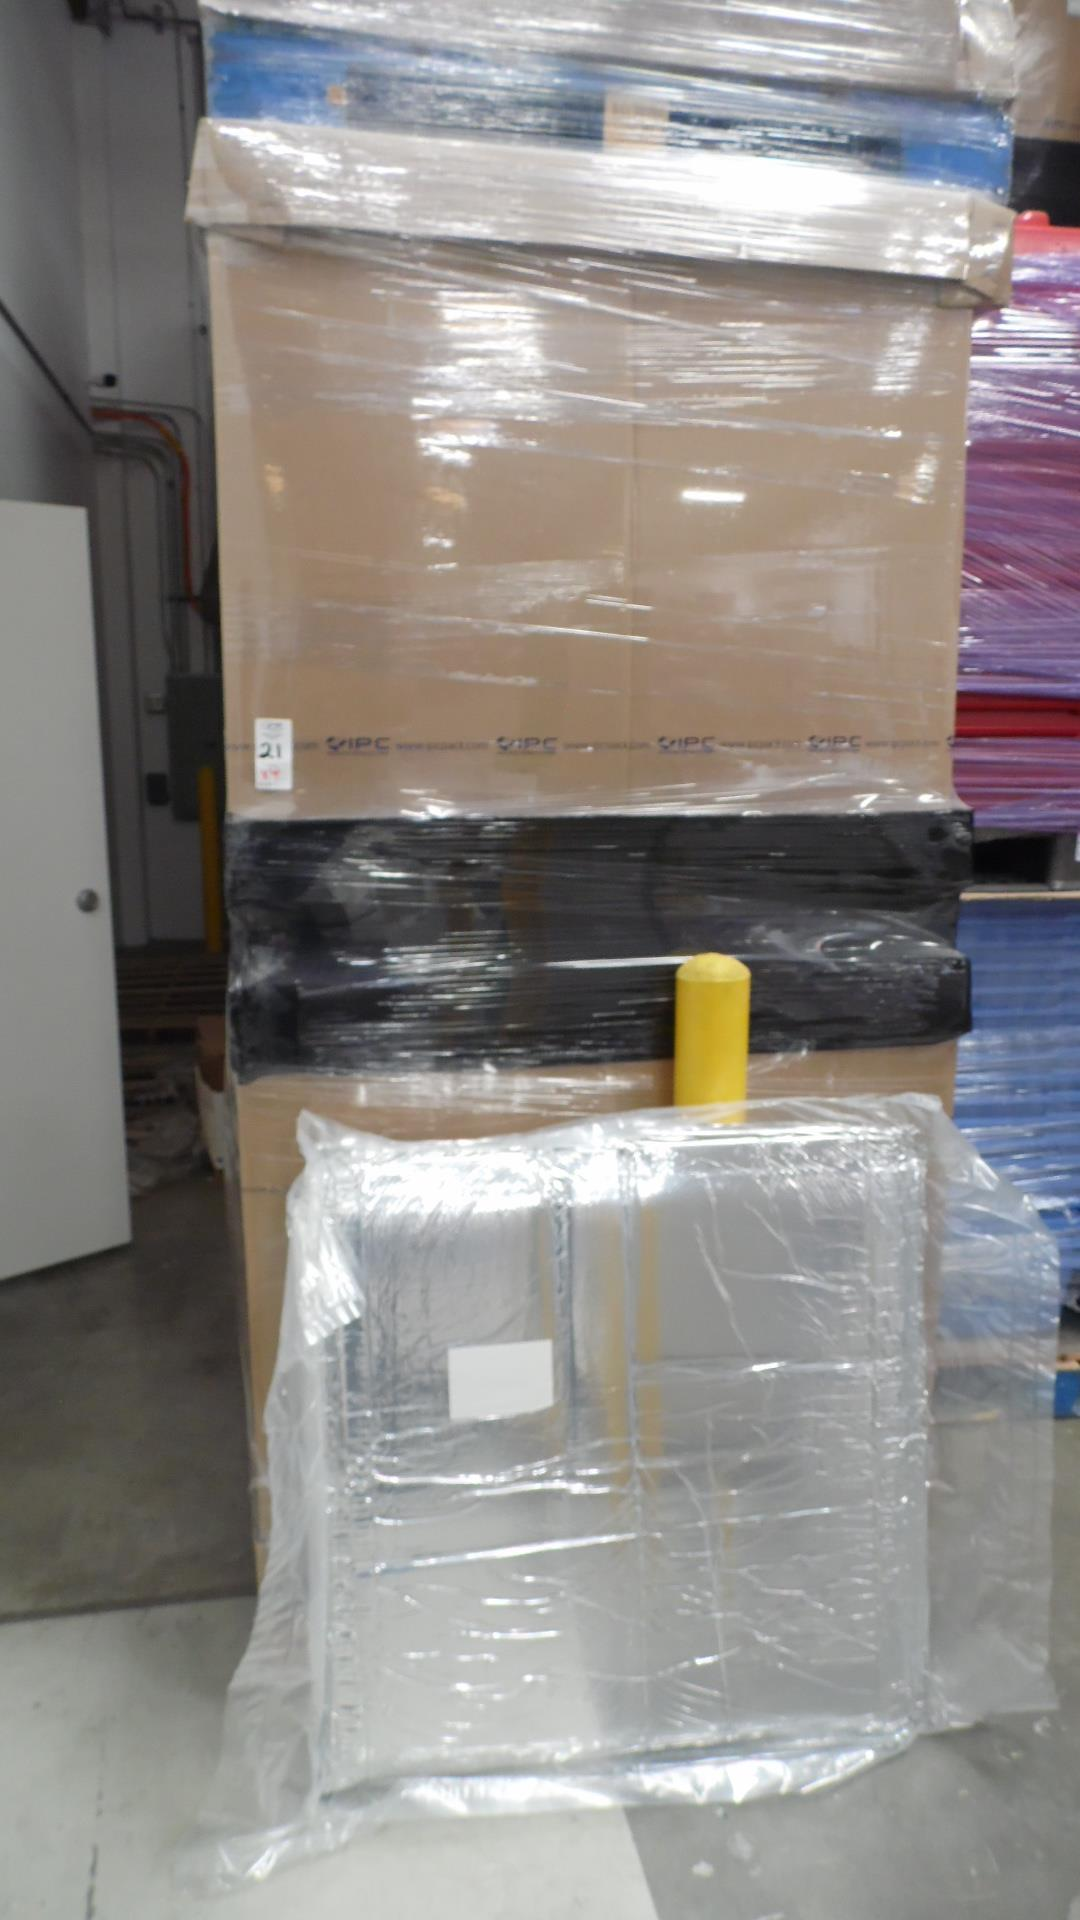 Lot 21 - INSULATED PACKS 15X11X11 (QTY 400)